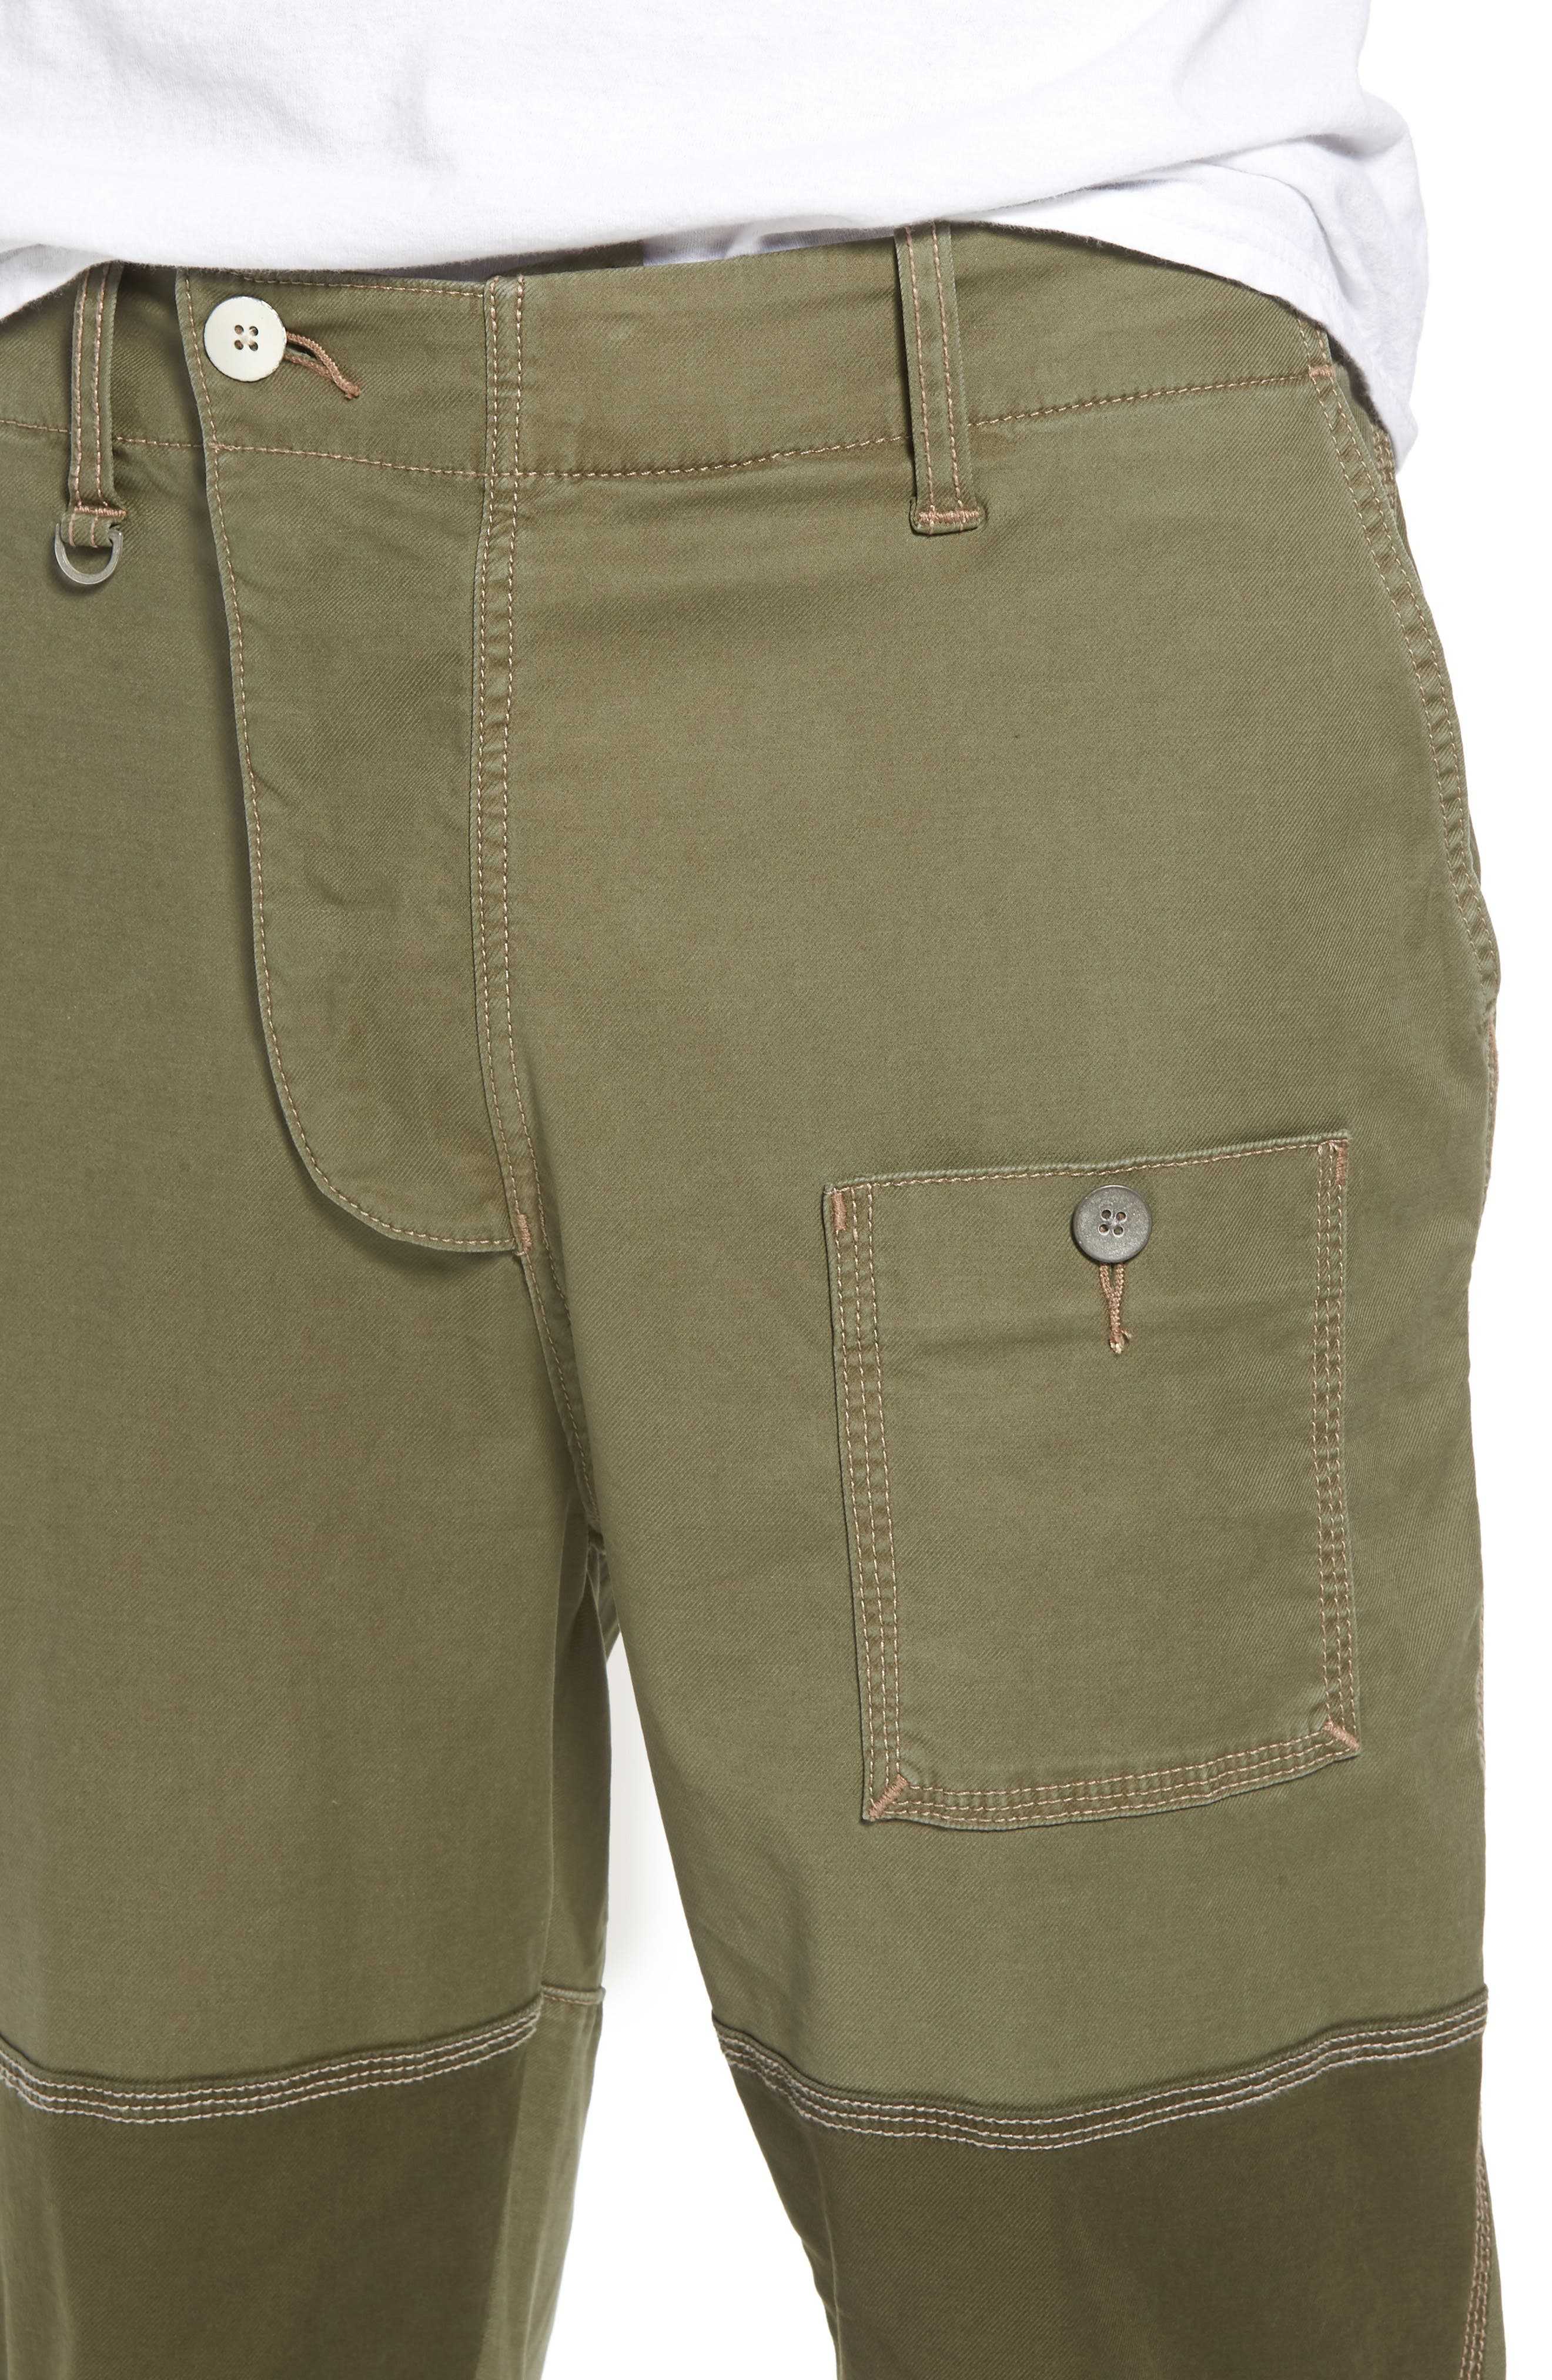 Slouchy Slim Fit Cargo Pants,                             Alternate thumbnail 4, color,                             Army Green 1